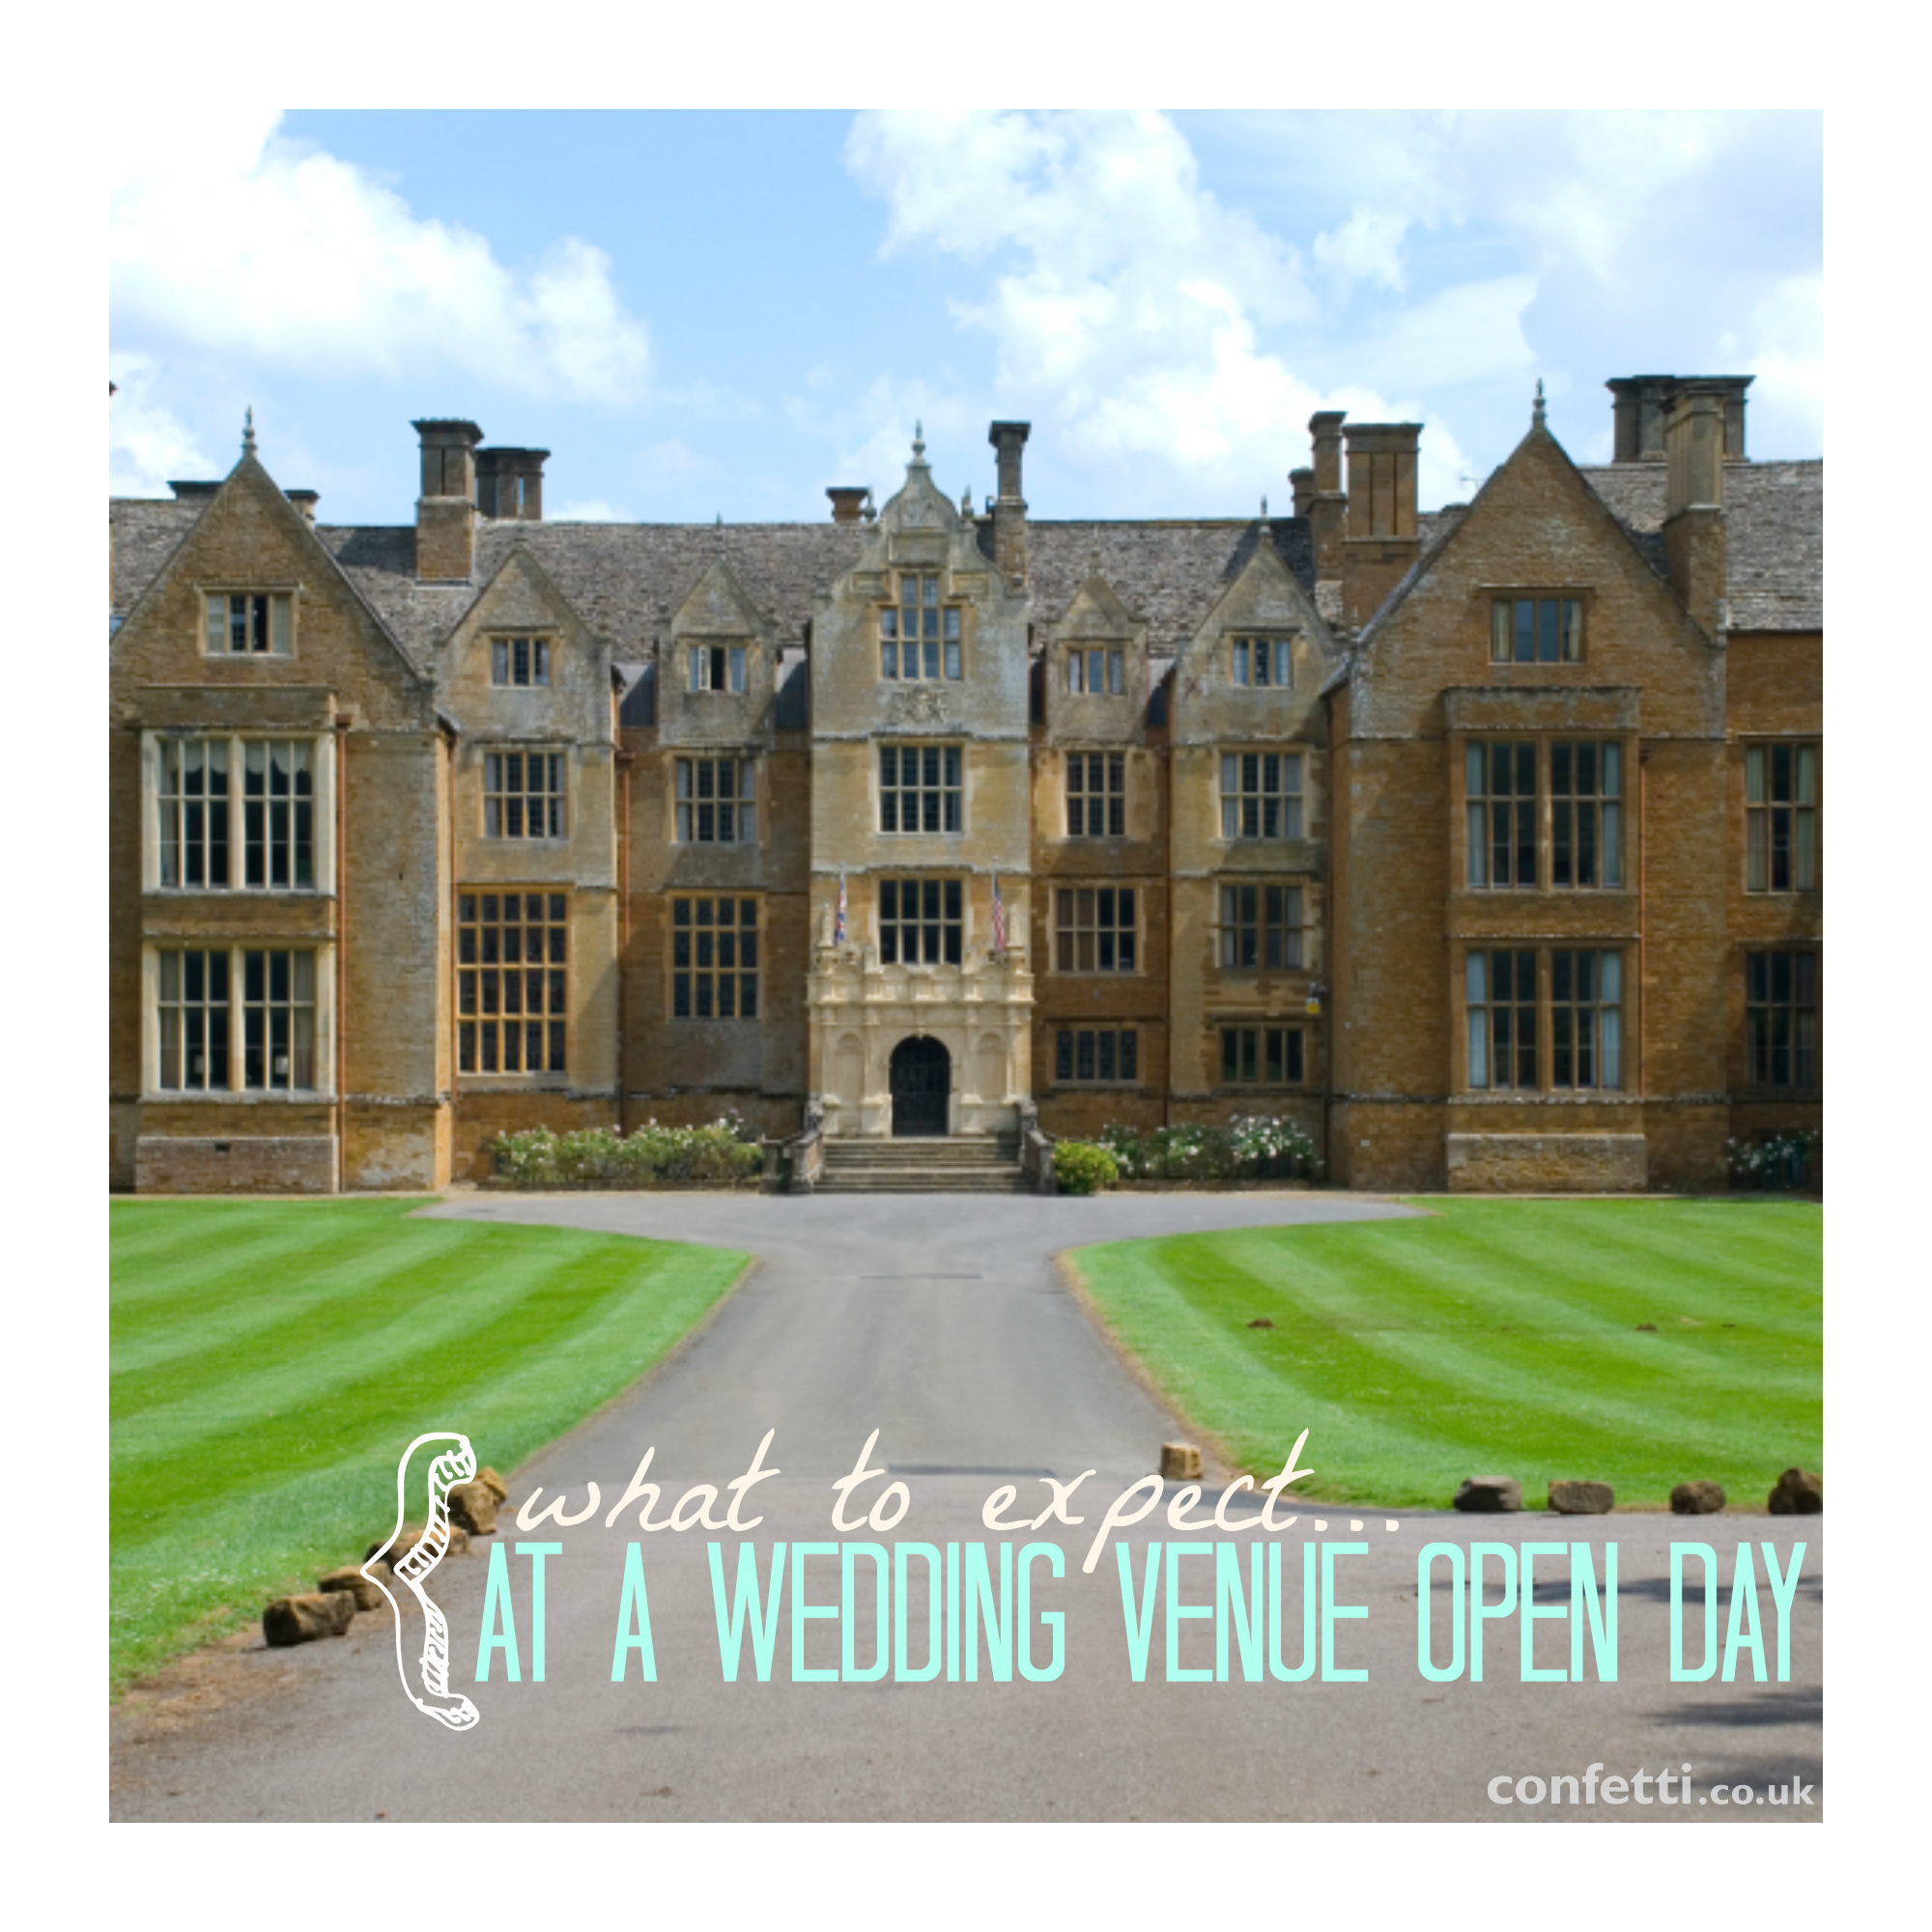 What to Expect at a Wedding Venue Open Day - Confetti.co.uk